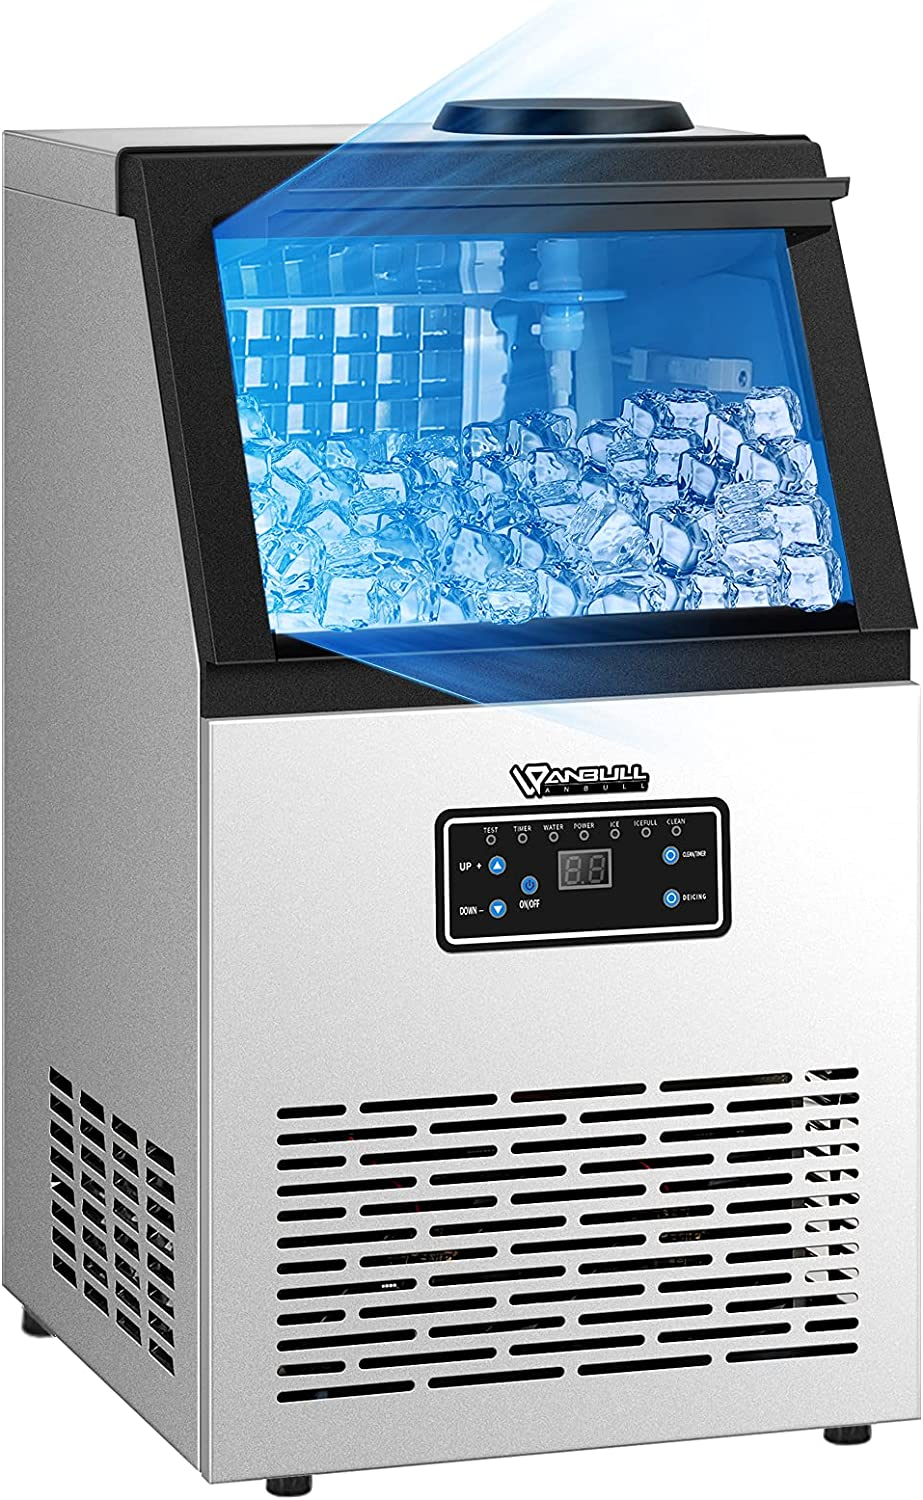 Anbull Commercial Ice Maker Machine, 132LBS/24H with 26LBS Ice Storage Capacity, Stainless Steel Clear Ice Cube Maker Ideal For Home/Kitchen/Office/Restaurant/Bar/Coffee Shop